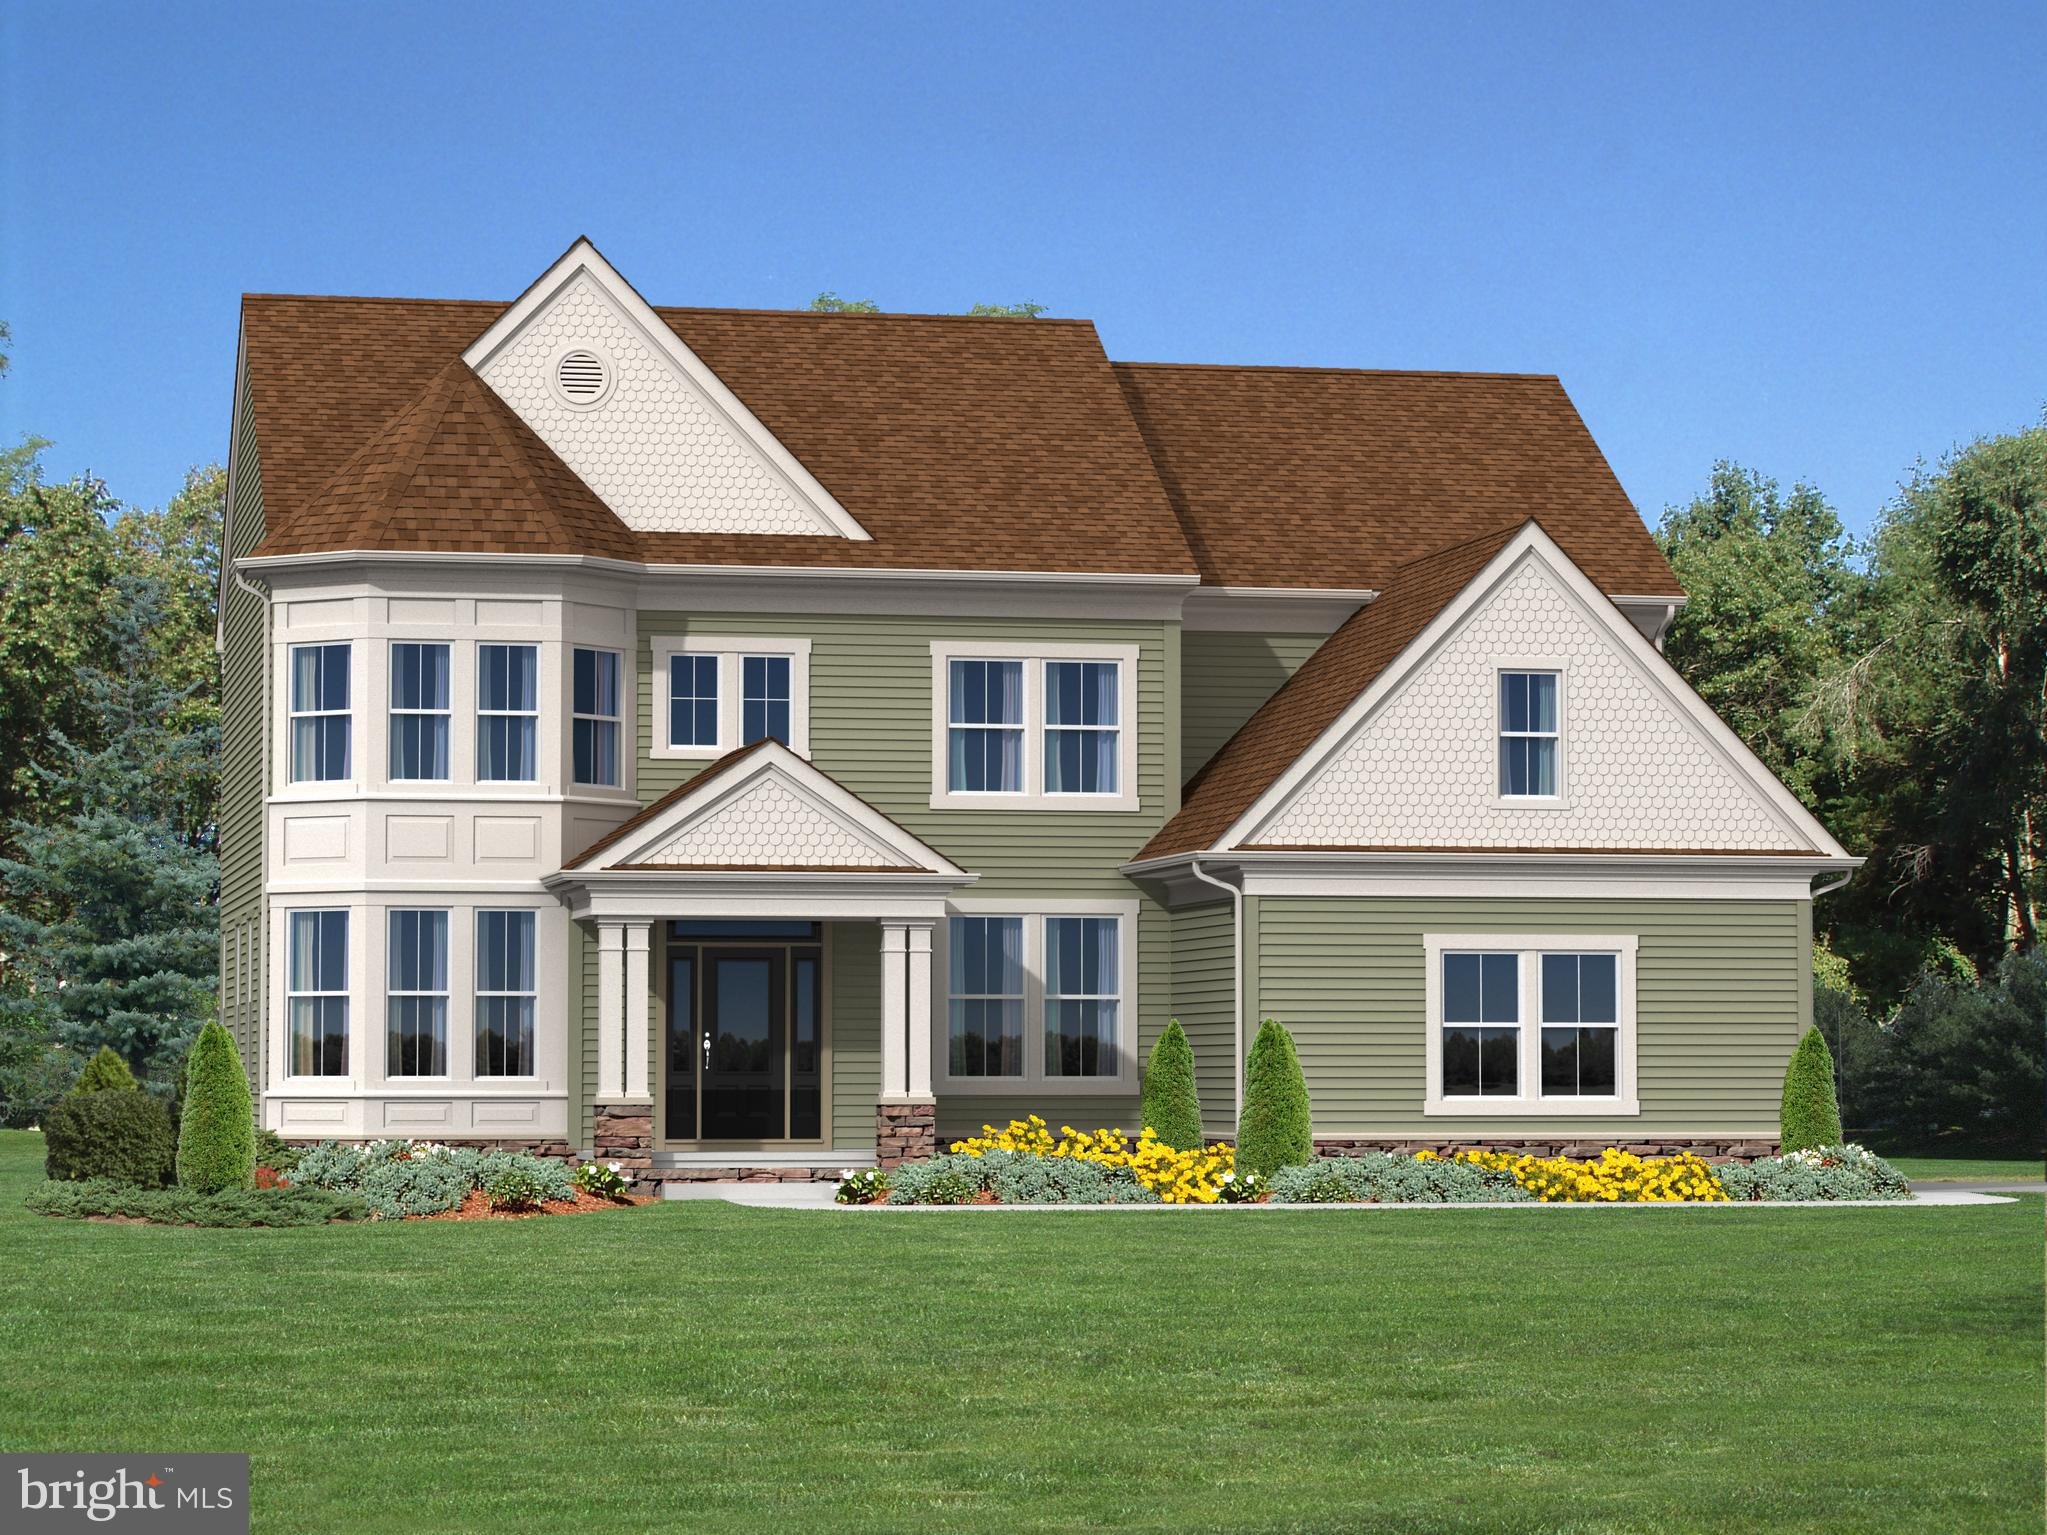 Our Legato Model. 4 bedrooms, 2.5 bathrooms, 3,000 square feet standard. Options include a 5' family room extension, sunroom, 2nd floor laundry, optional 2nd floor plan and finished basement. Starting from $409,900. This is a to be built home. Please visit Bayberryhomes.com to view interactive floorplan.